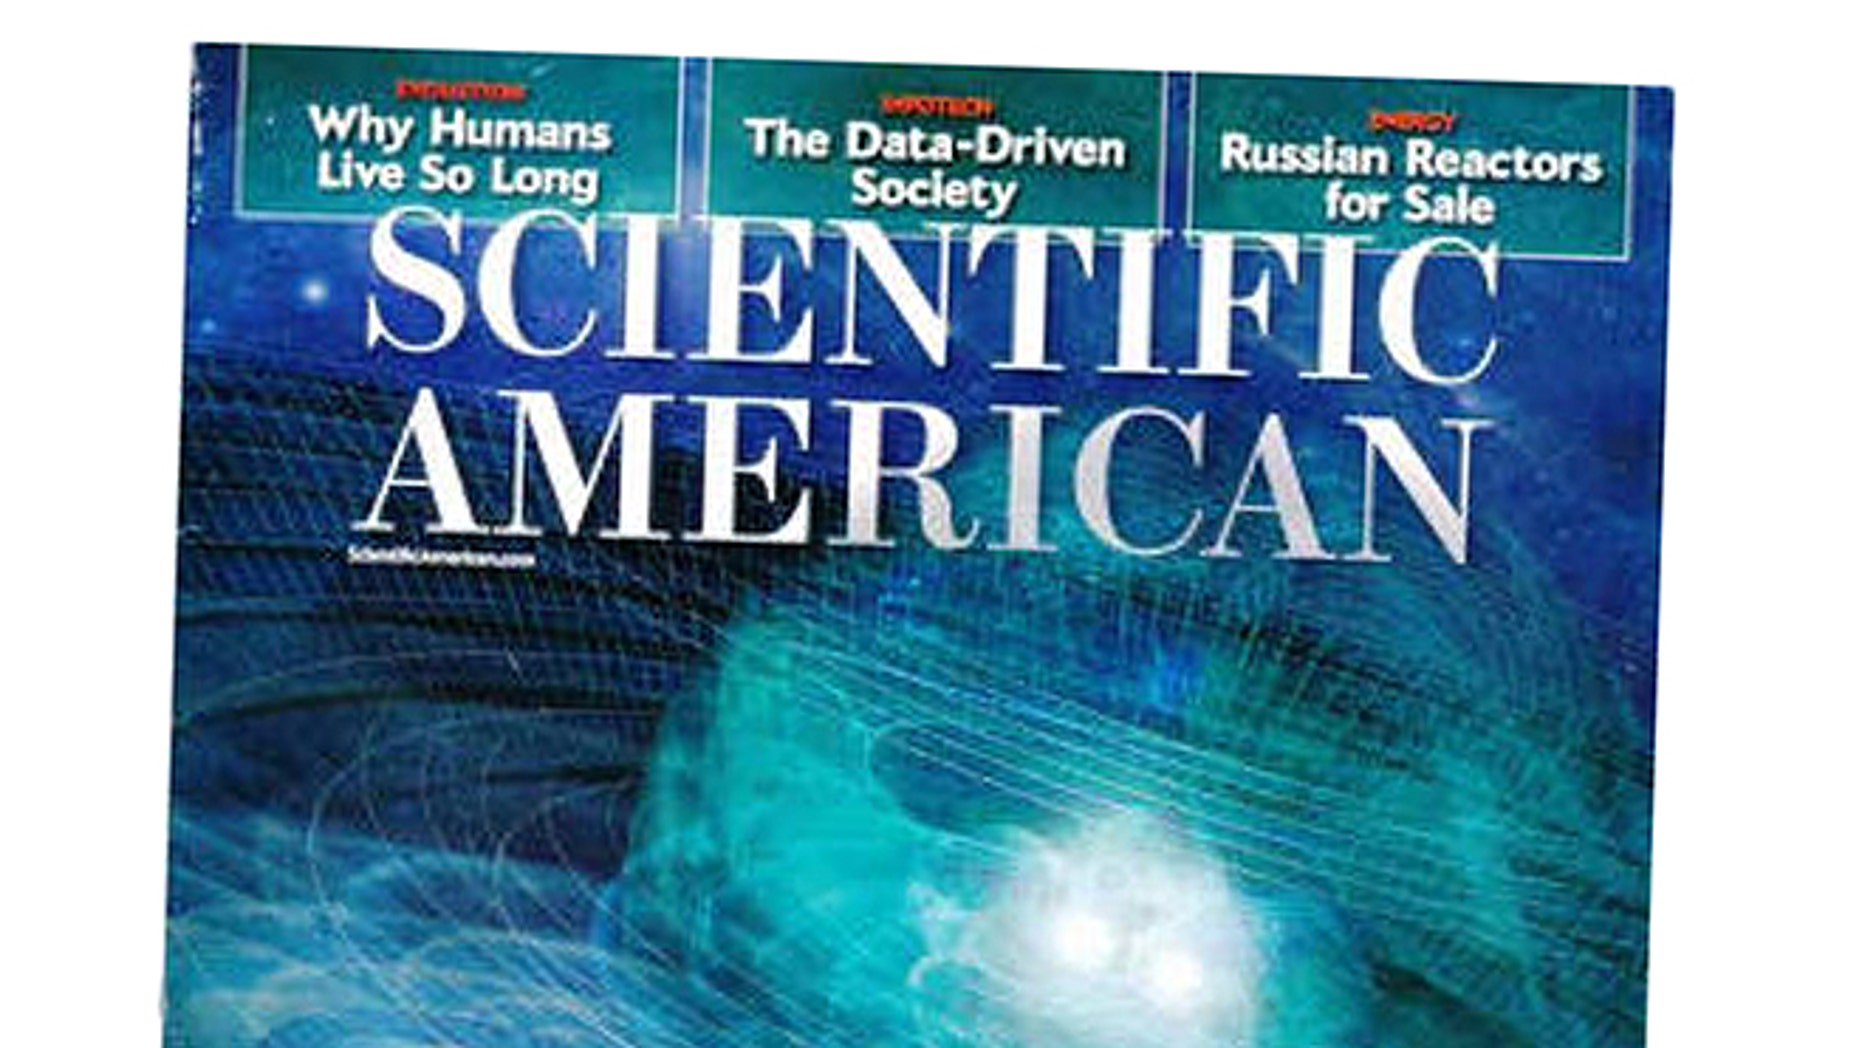 The Oct. 2013 issue of Scientific American magazine.